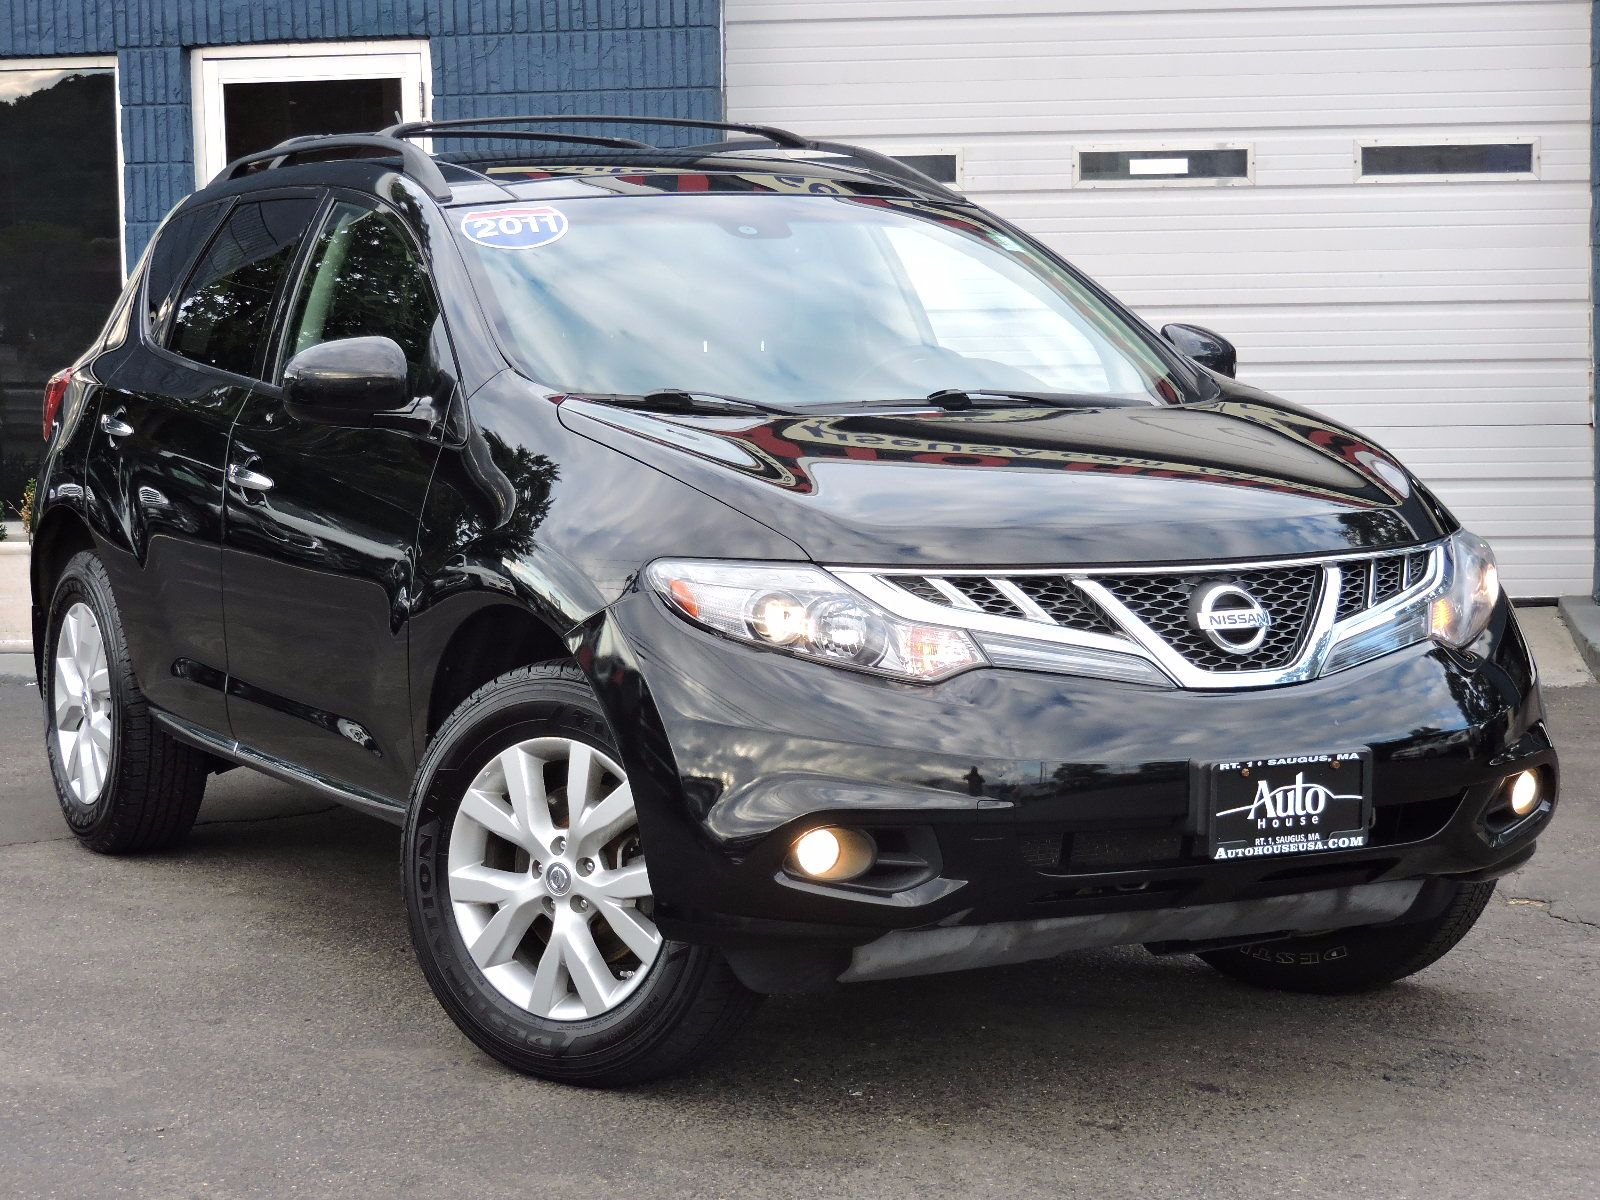 nissan used dartmouth auto for img sale inventory sv in en sales vehicle murano